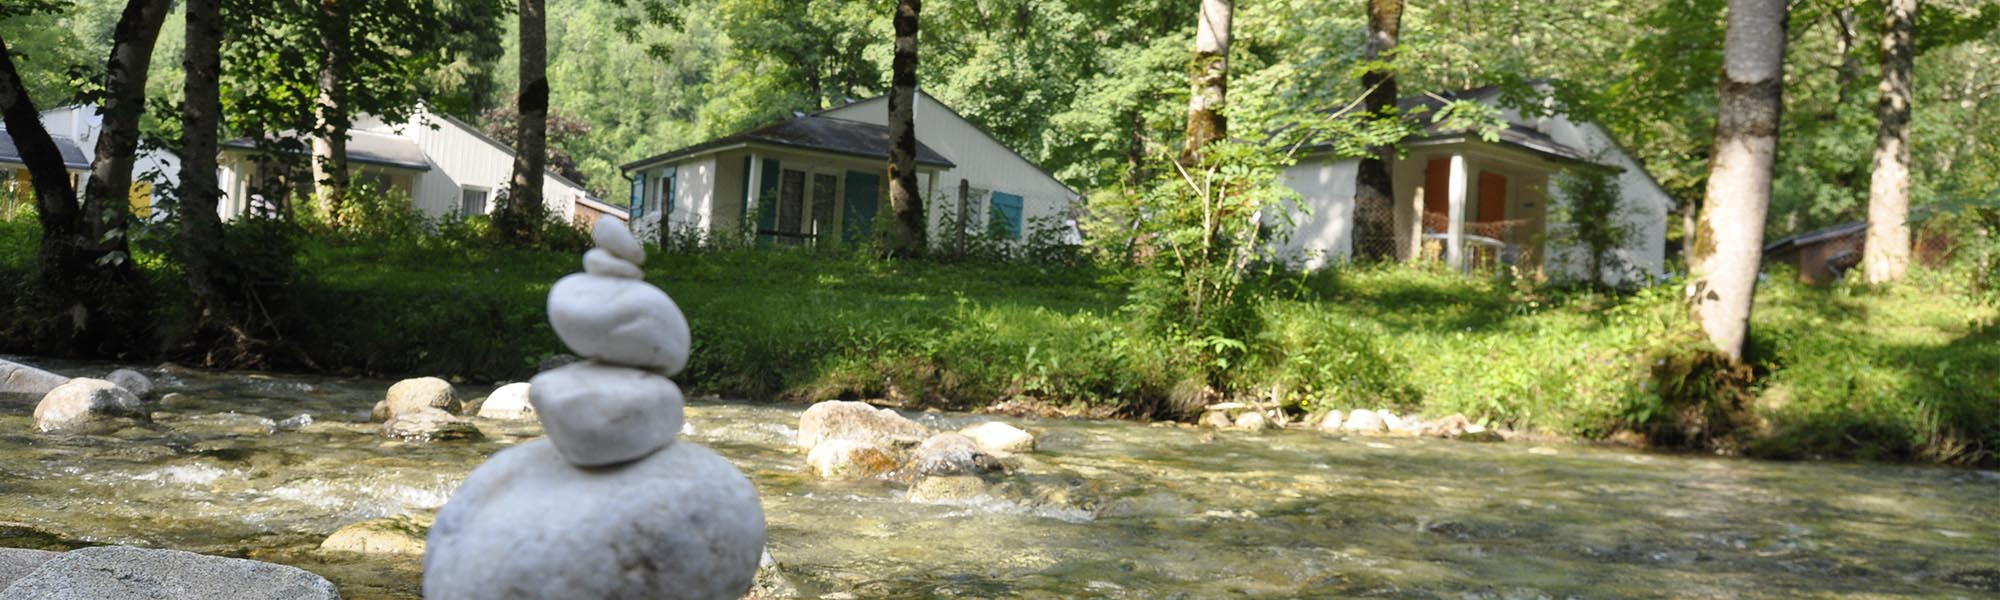 camping-couledous-aulus-accueil-bandeau-1